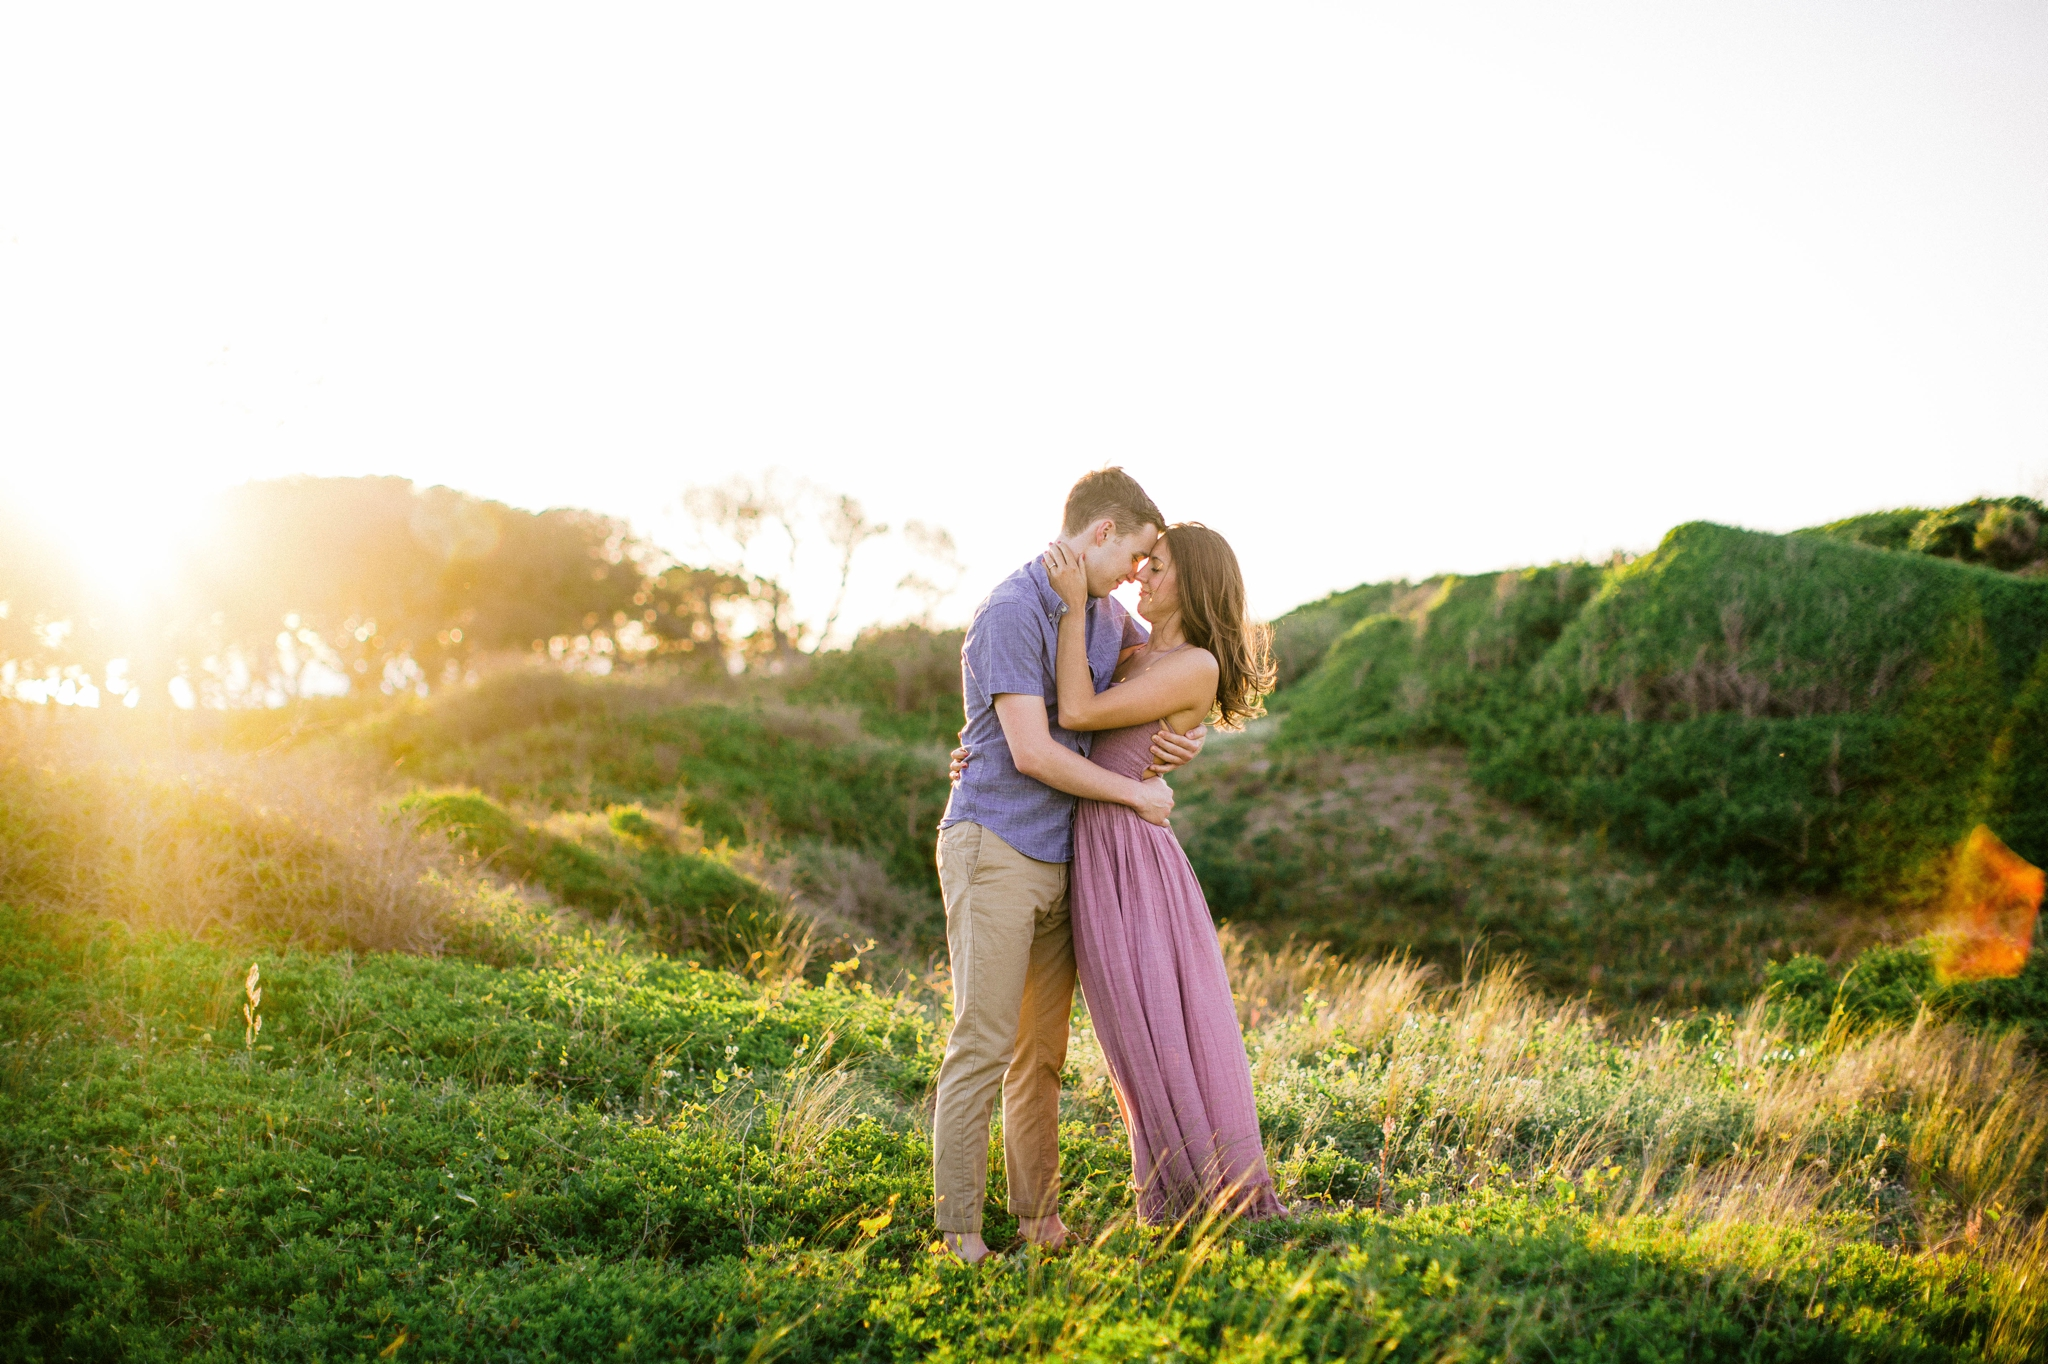 couple kissing in front of lush green dunes and hills with the sunset behind them - Woman is in a flowy pastel maxi dress - outdoor golden light session - engagement photographer in honolulu, oahu, hawaii - johanna dye photography